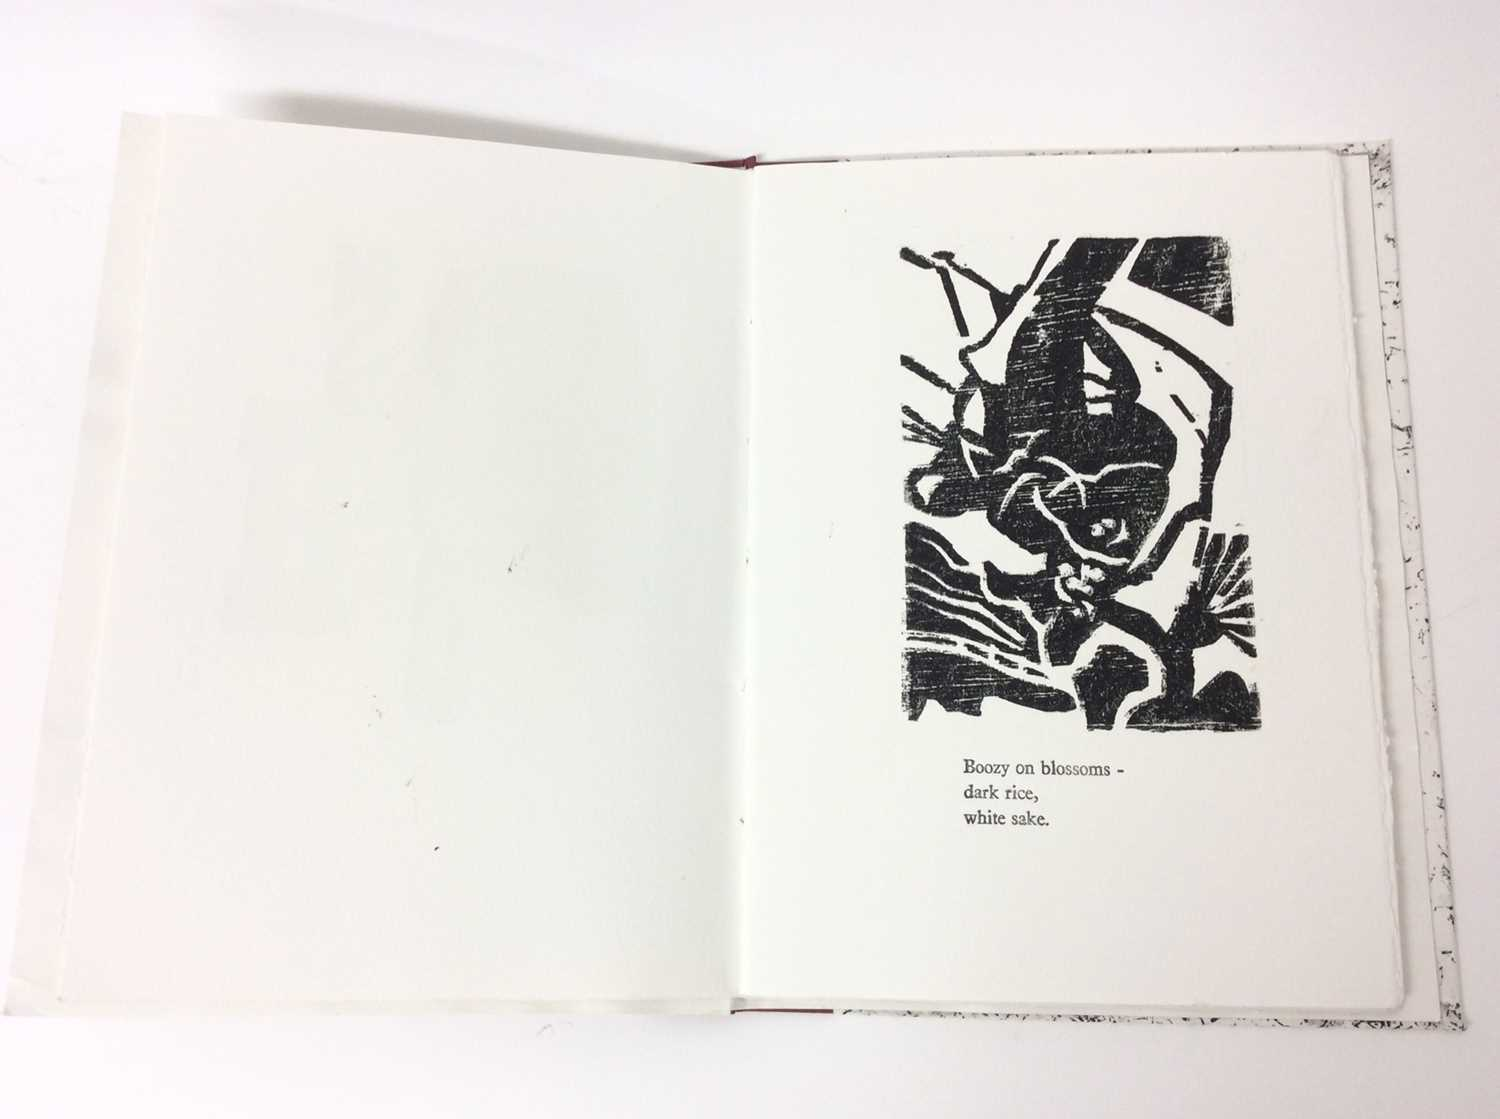 P. J. Jackson - three very limited edition private publications - Image 10 of 11